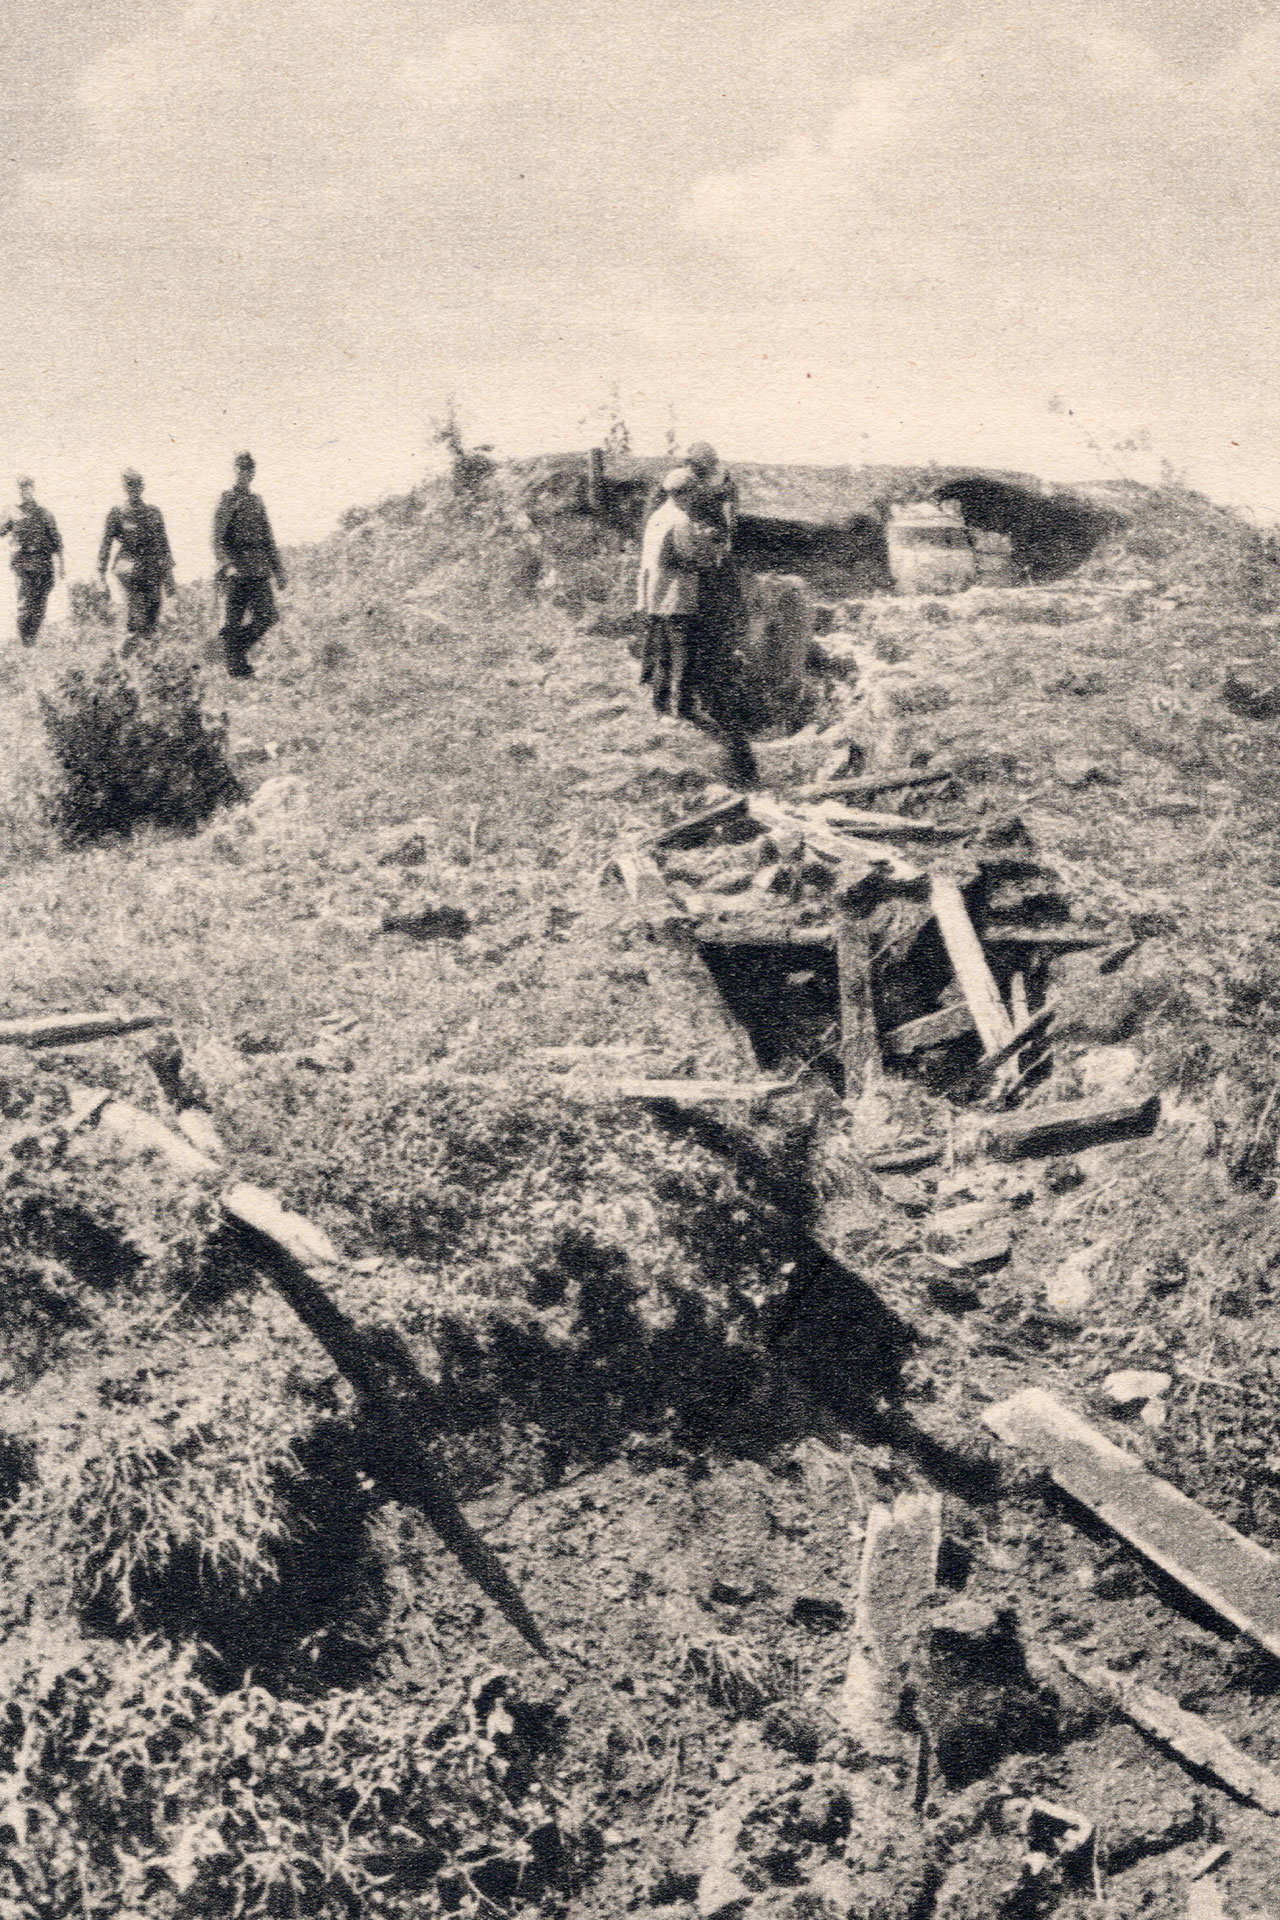 German soldiers investigate a destroyed Soviet bunker on the Stalin line in 1941.